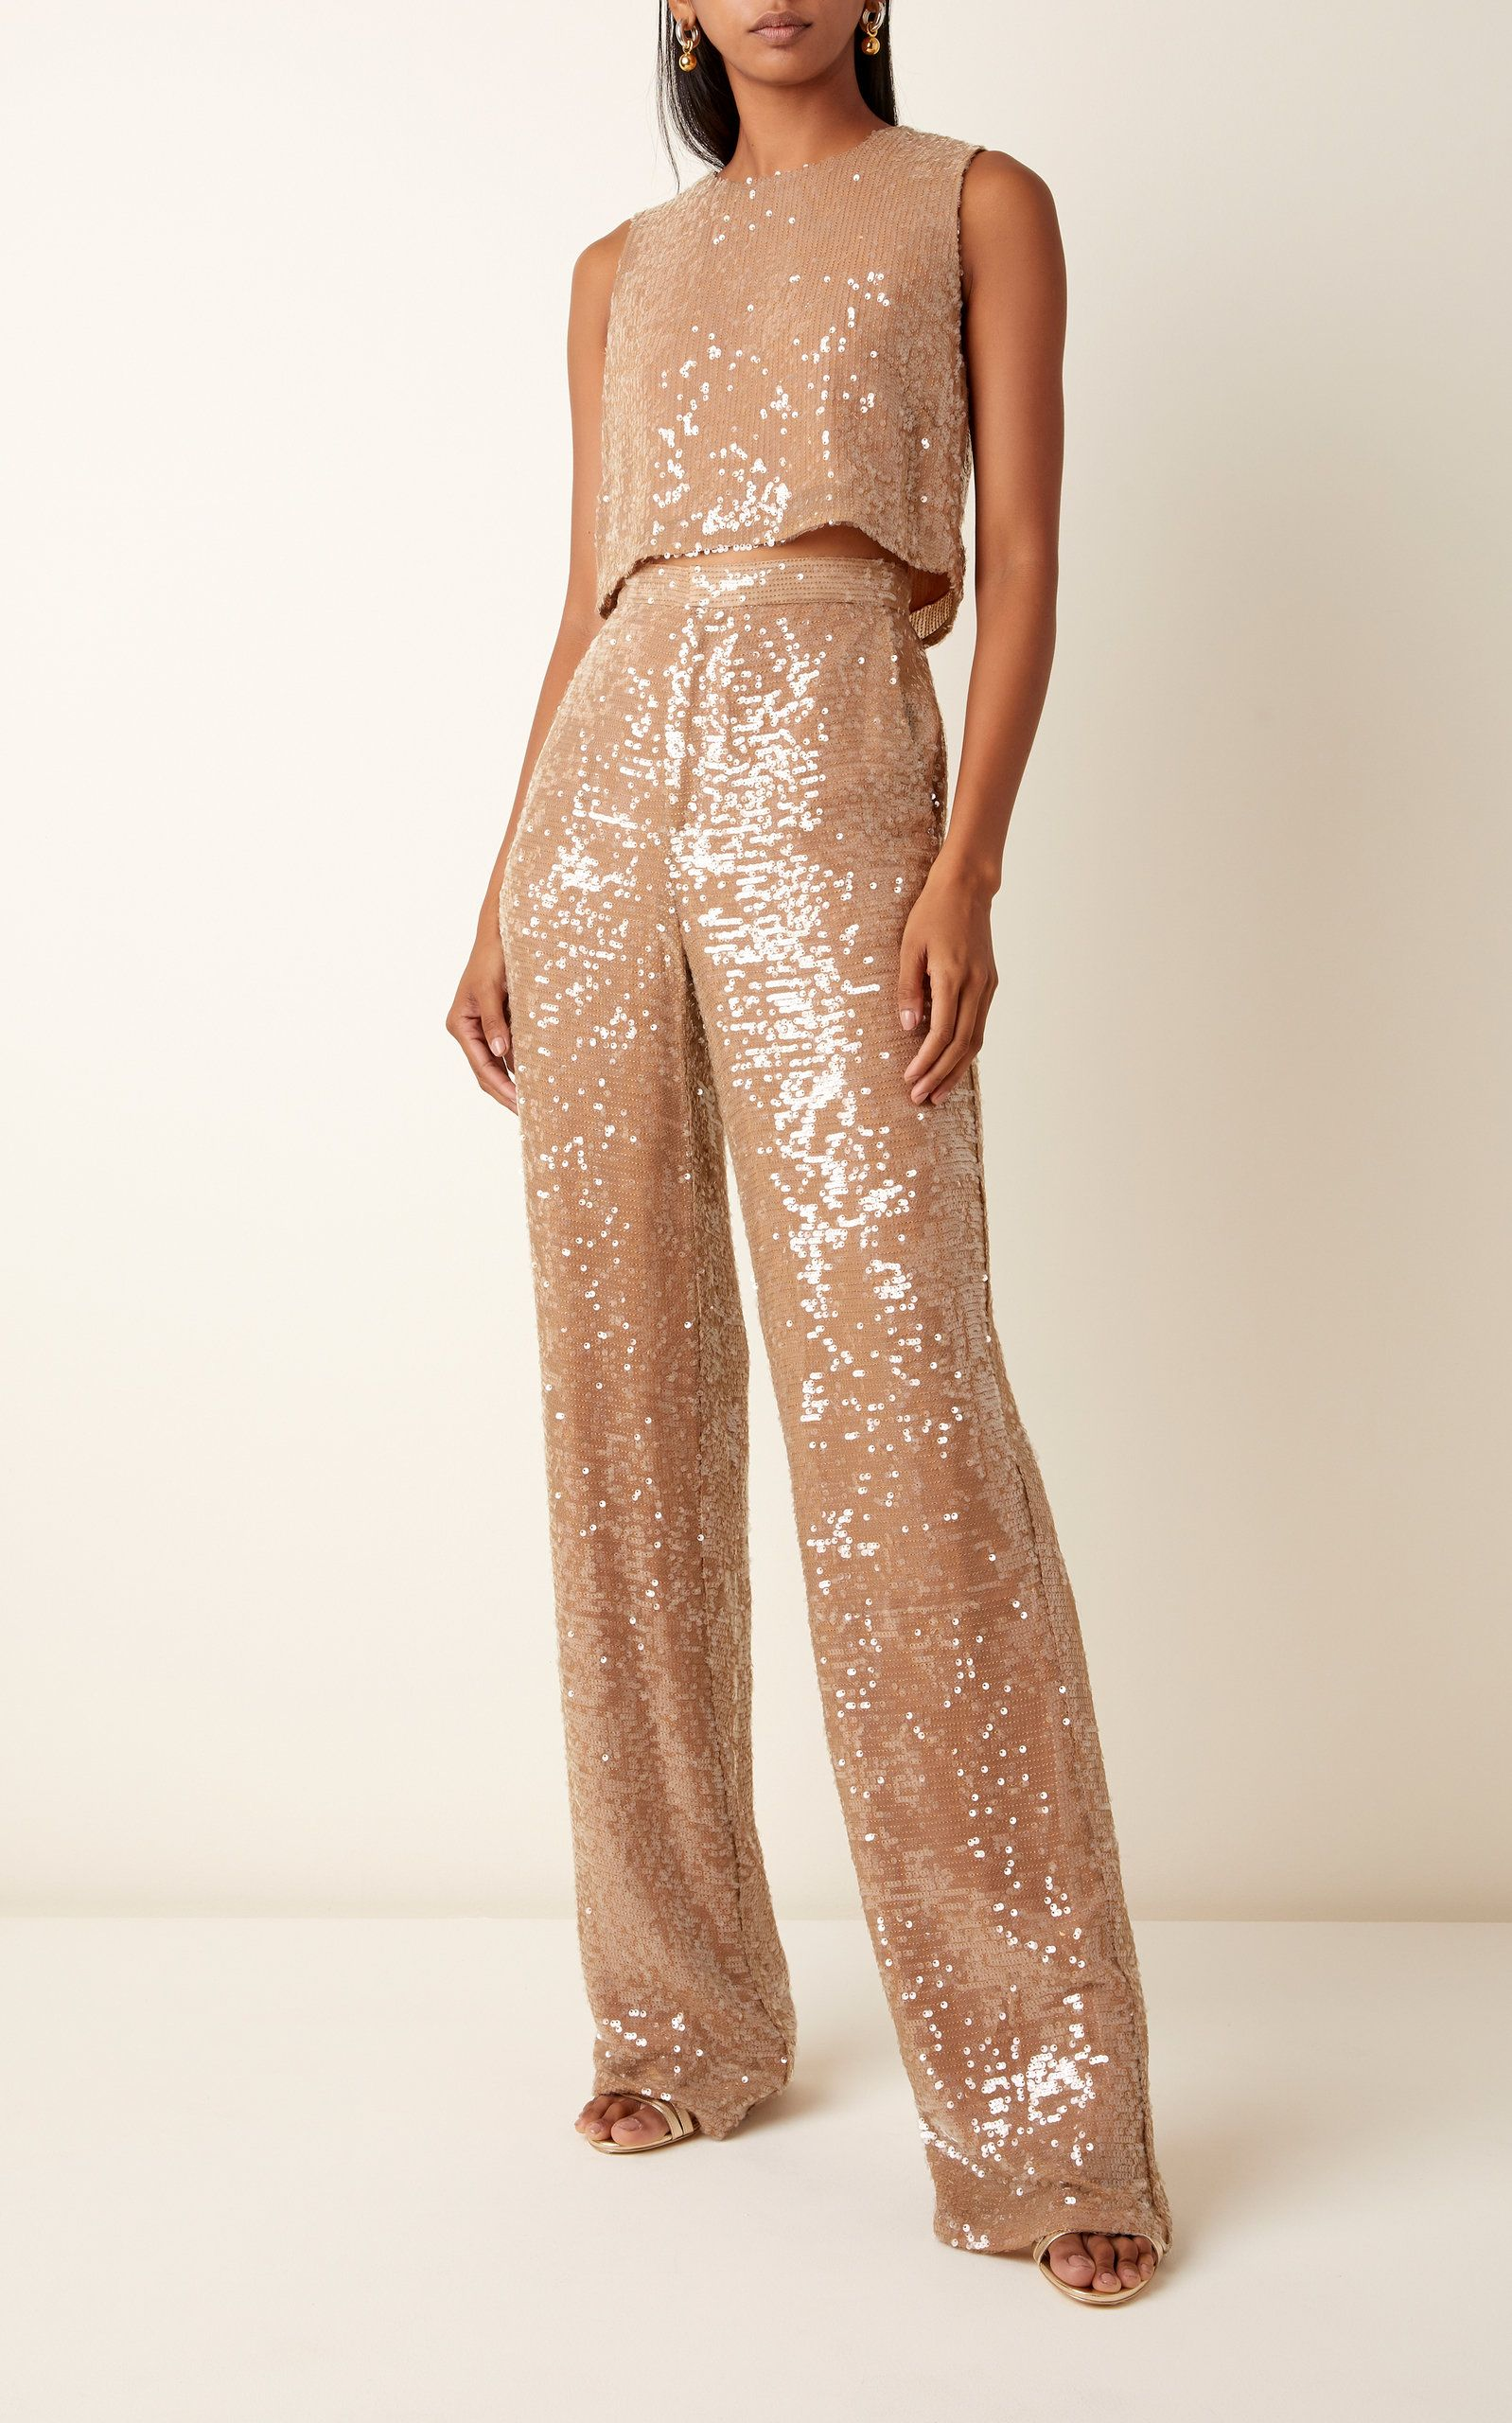 Rose Gold Sequin Pant Suit